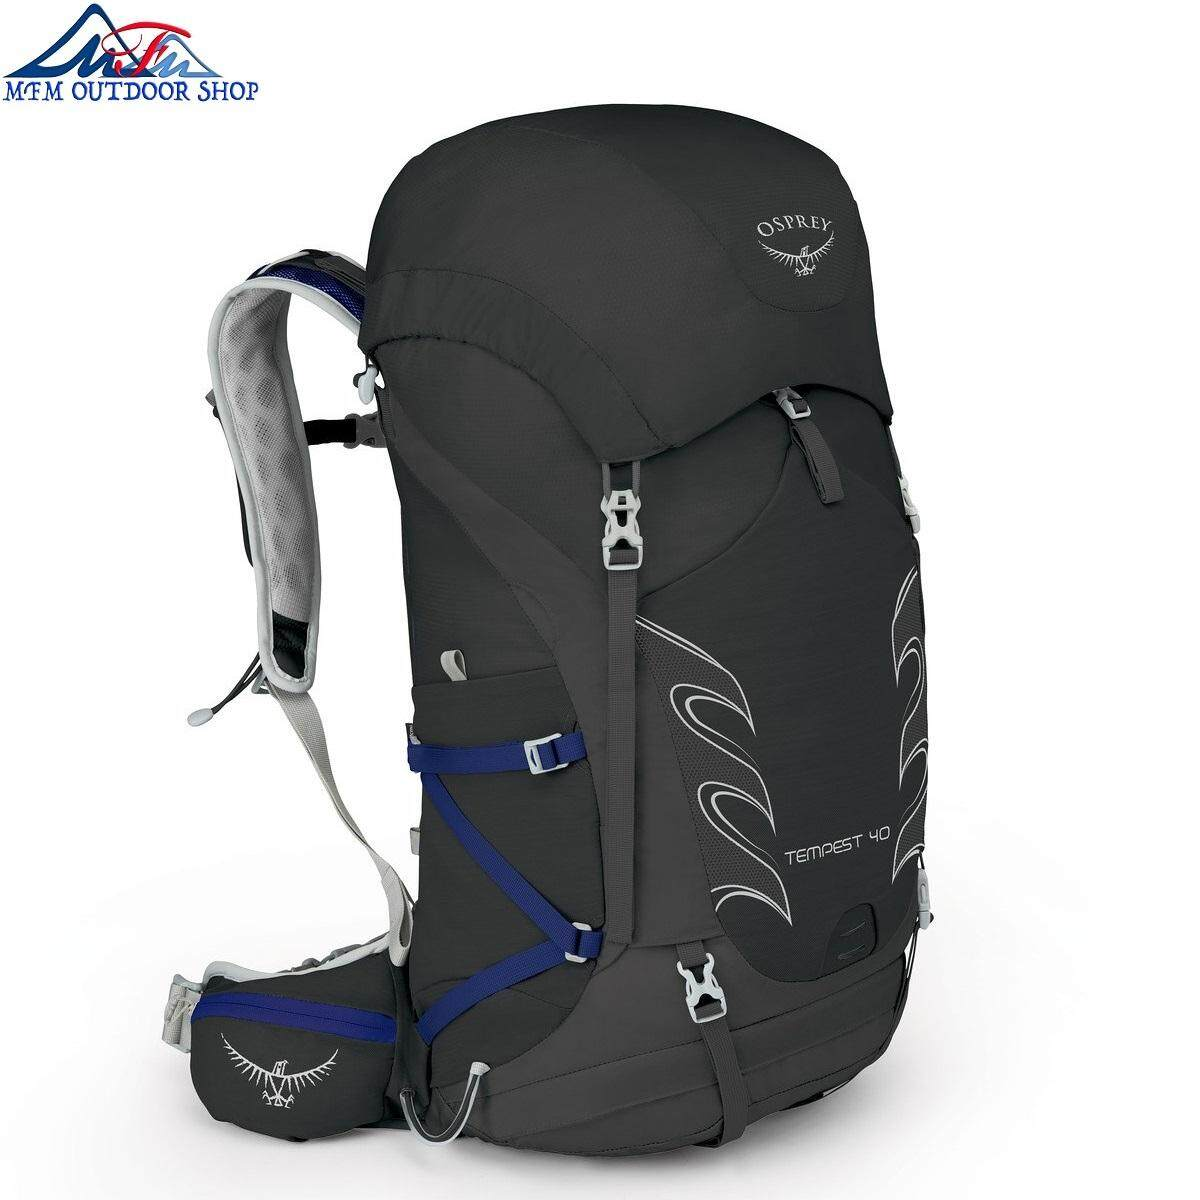 79a36f7fd4 Osprey Products for the Best Price in Malaysia